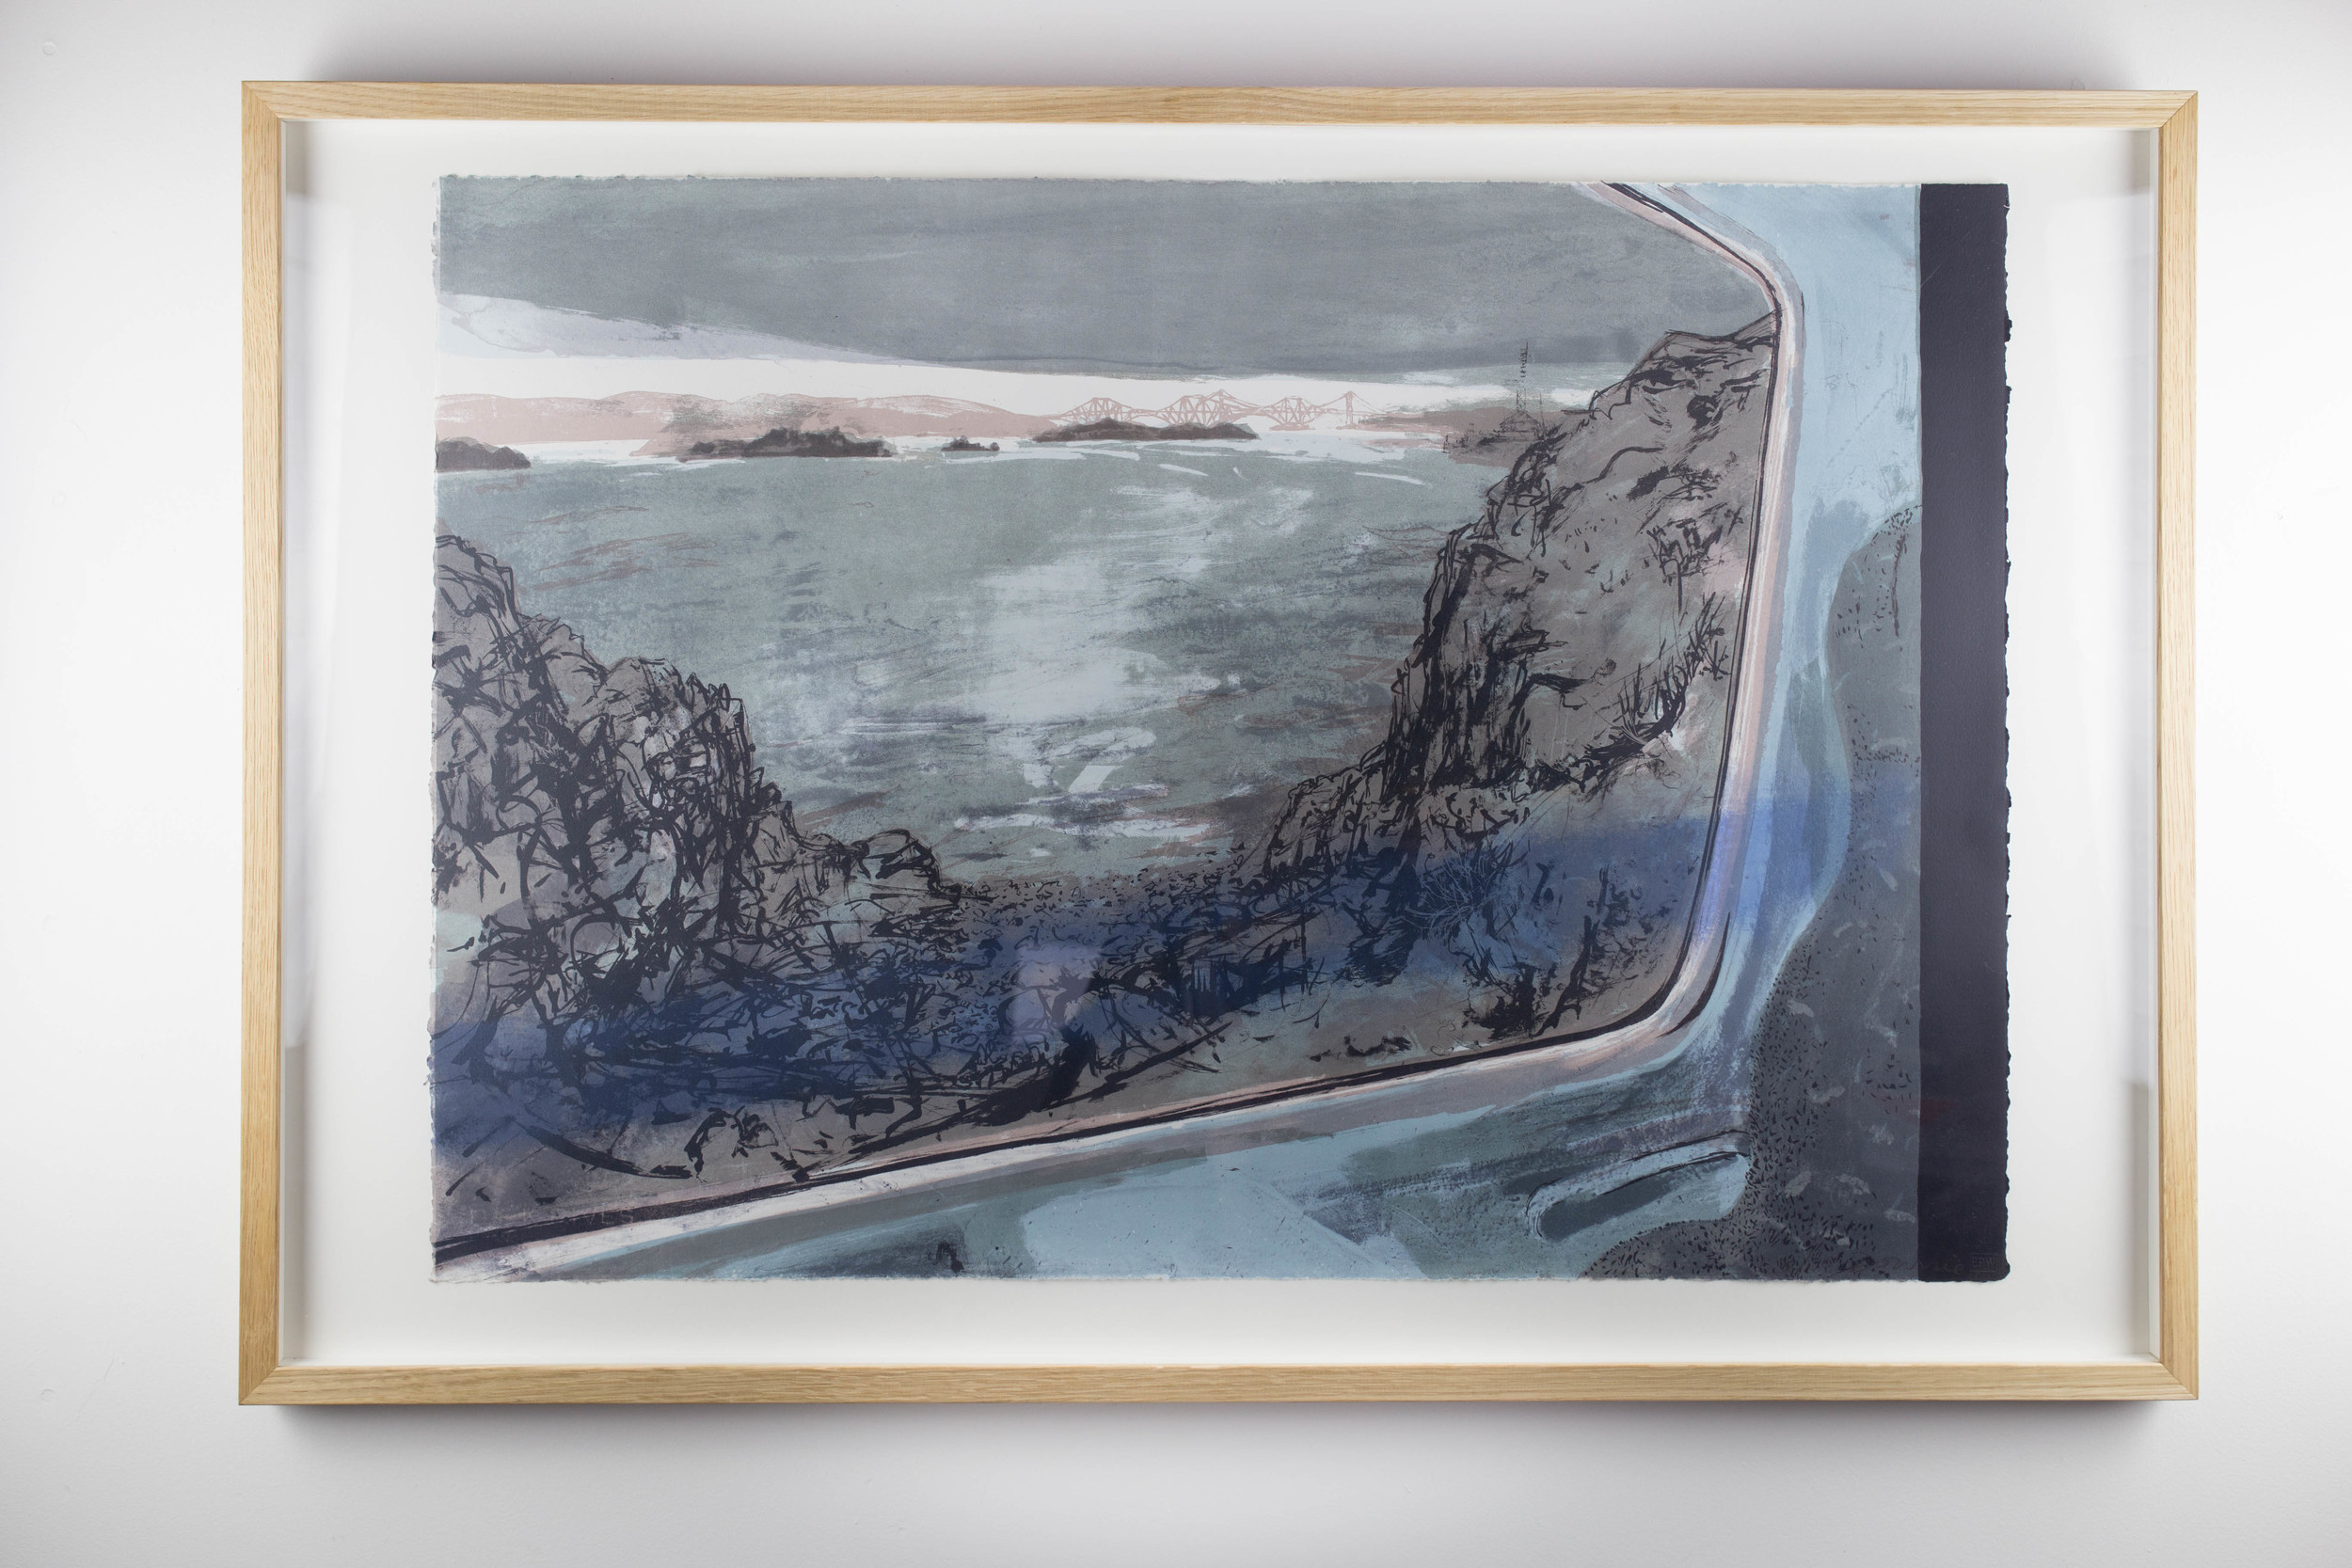 LOT 14   Kate Downie   Late Train on the Firth  Lithograph